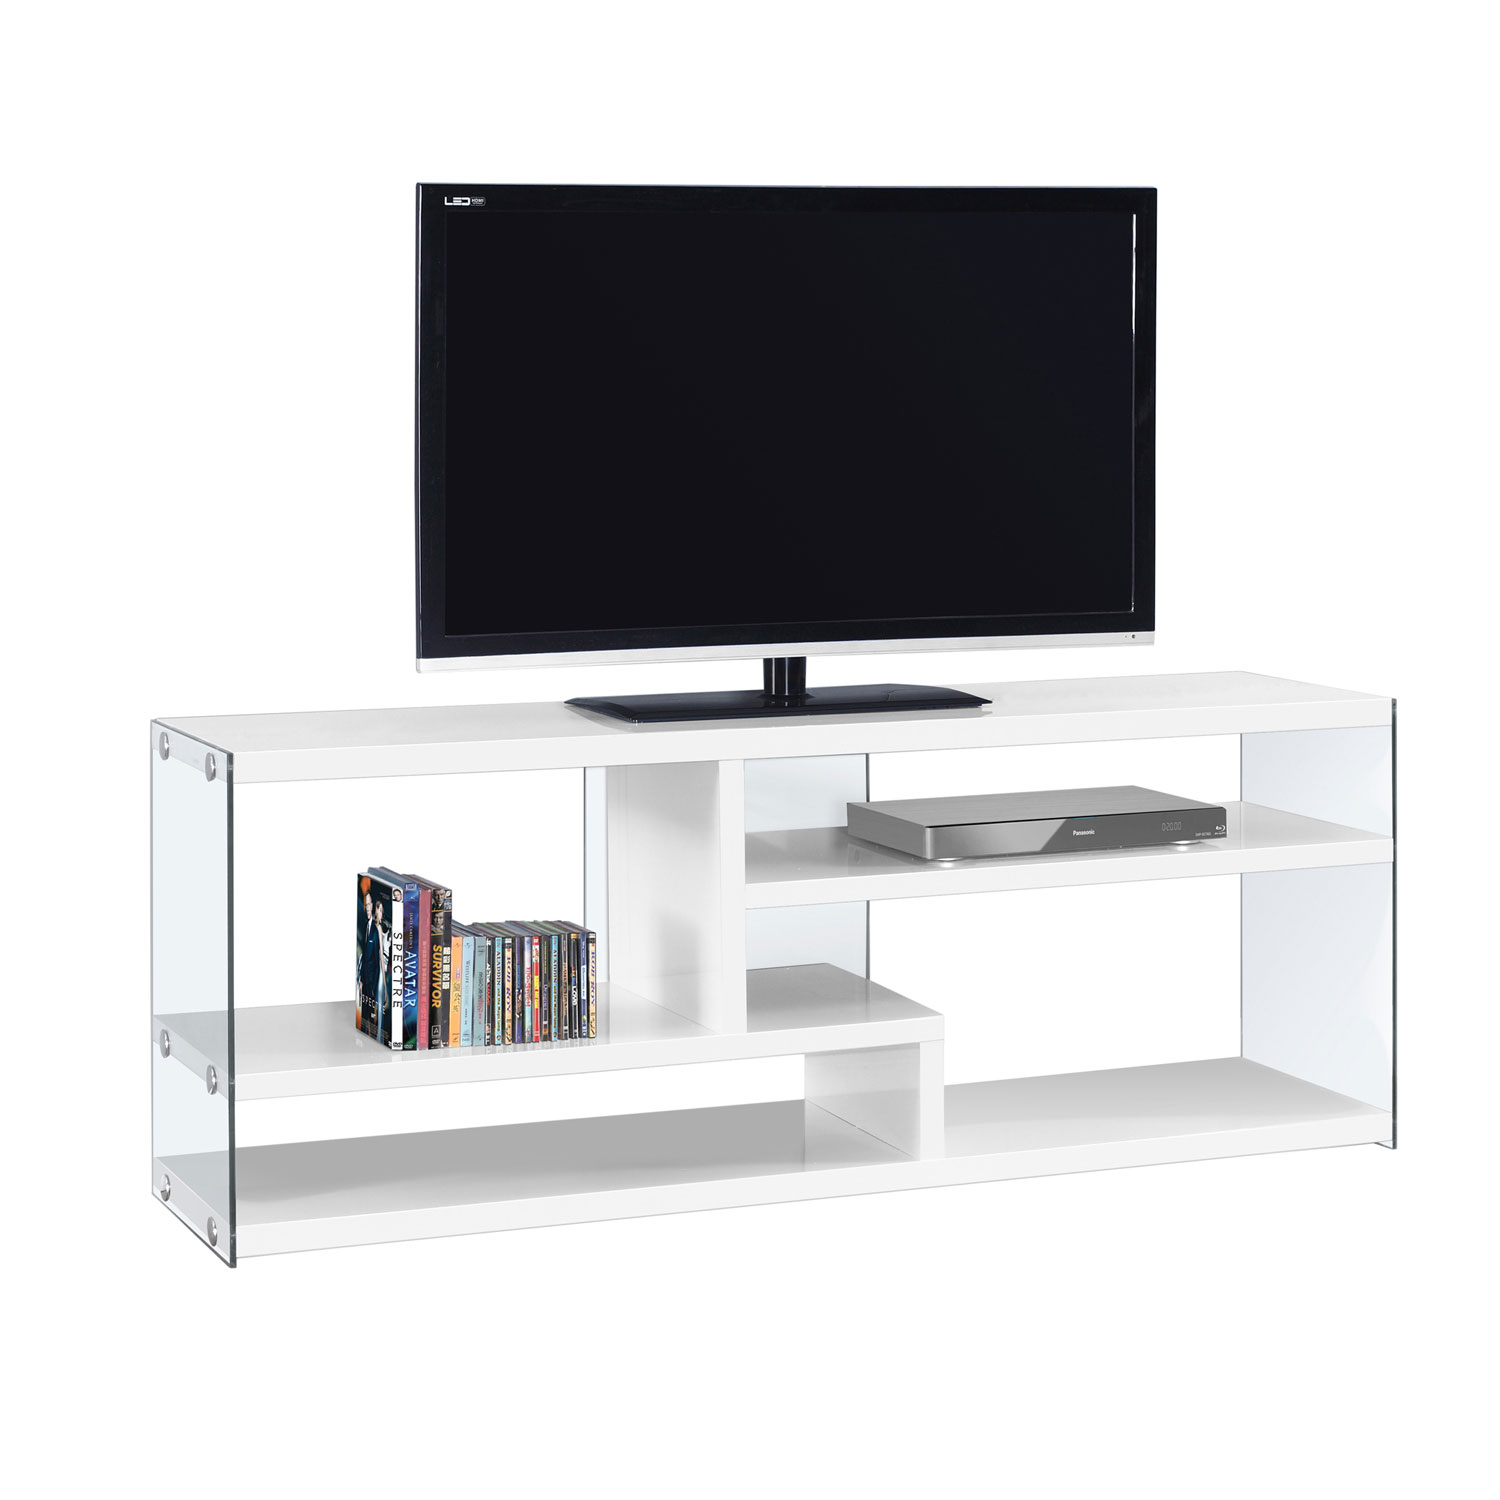 Hawthorne Ave Tv Stand 60l / Glossy White With Tempered Glass I 2690 Regarding Noah 75 Inch Tv Stands (View 10 of 30)